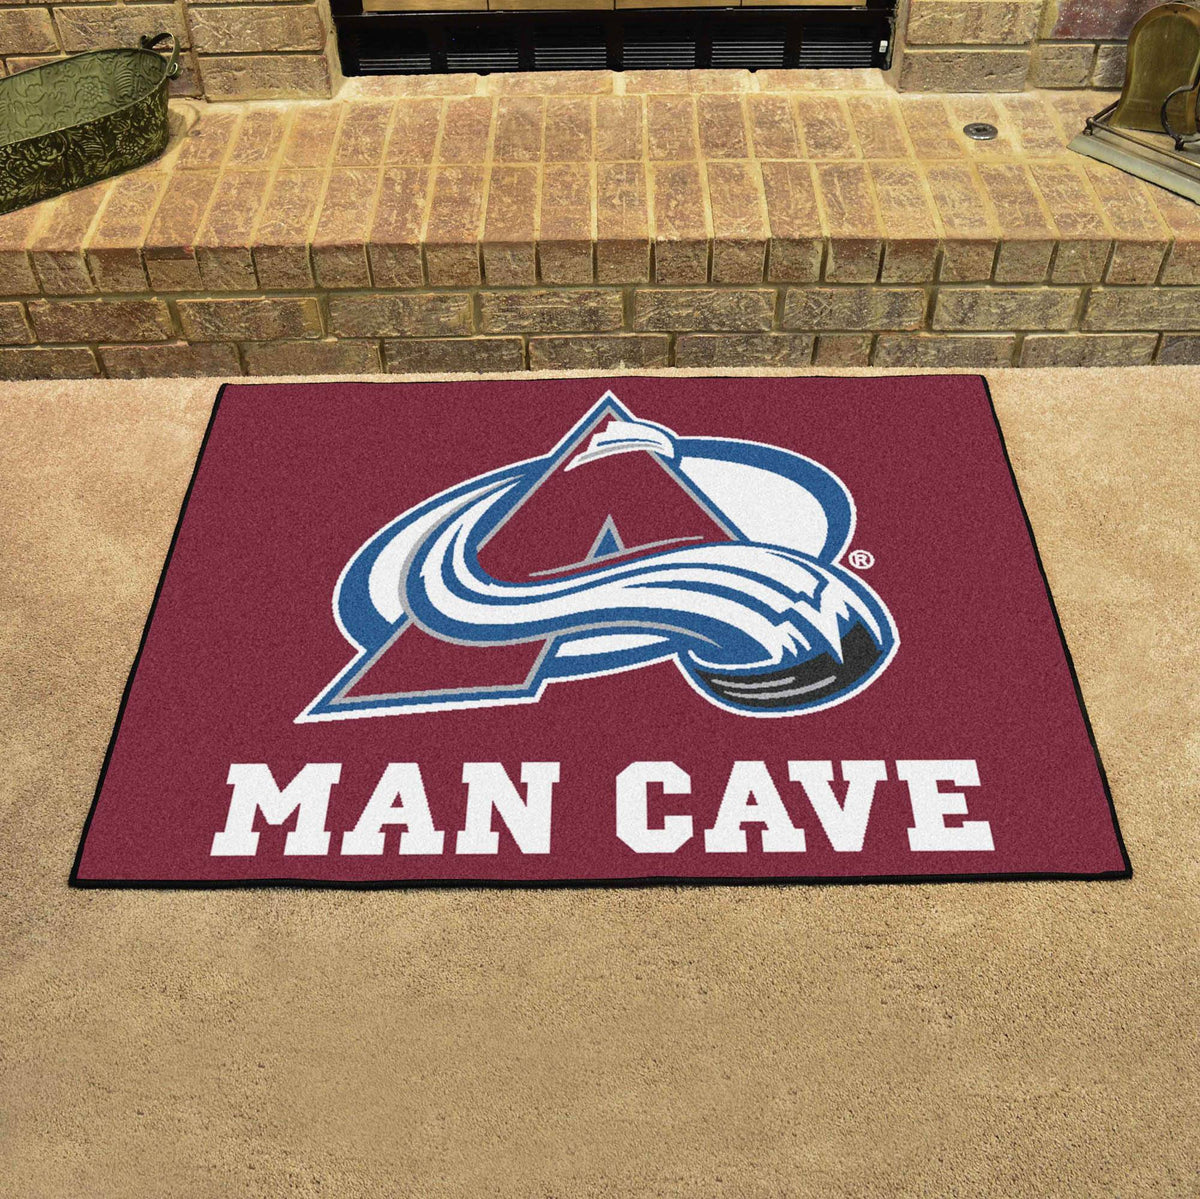 NHL - Man Cave All-Star NHL Mats, Rectangular Mats, Man Cave All-Star Mat, NHL, Home Fan Mats Colorado Avalanche